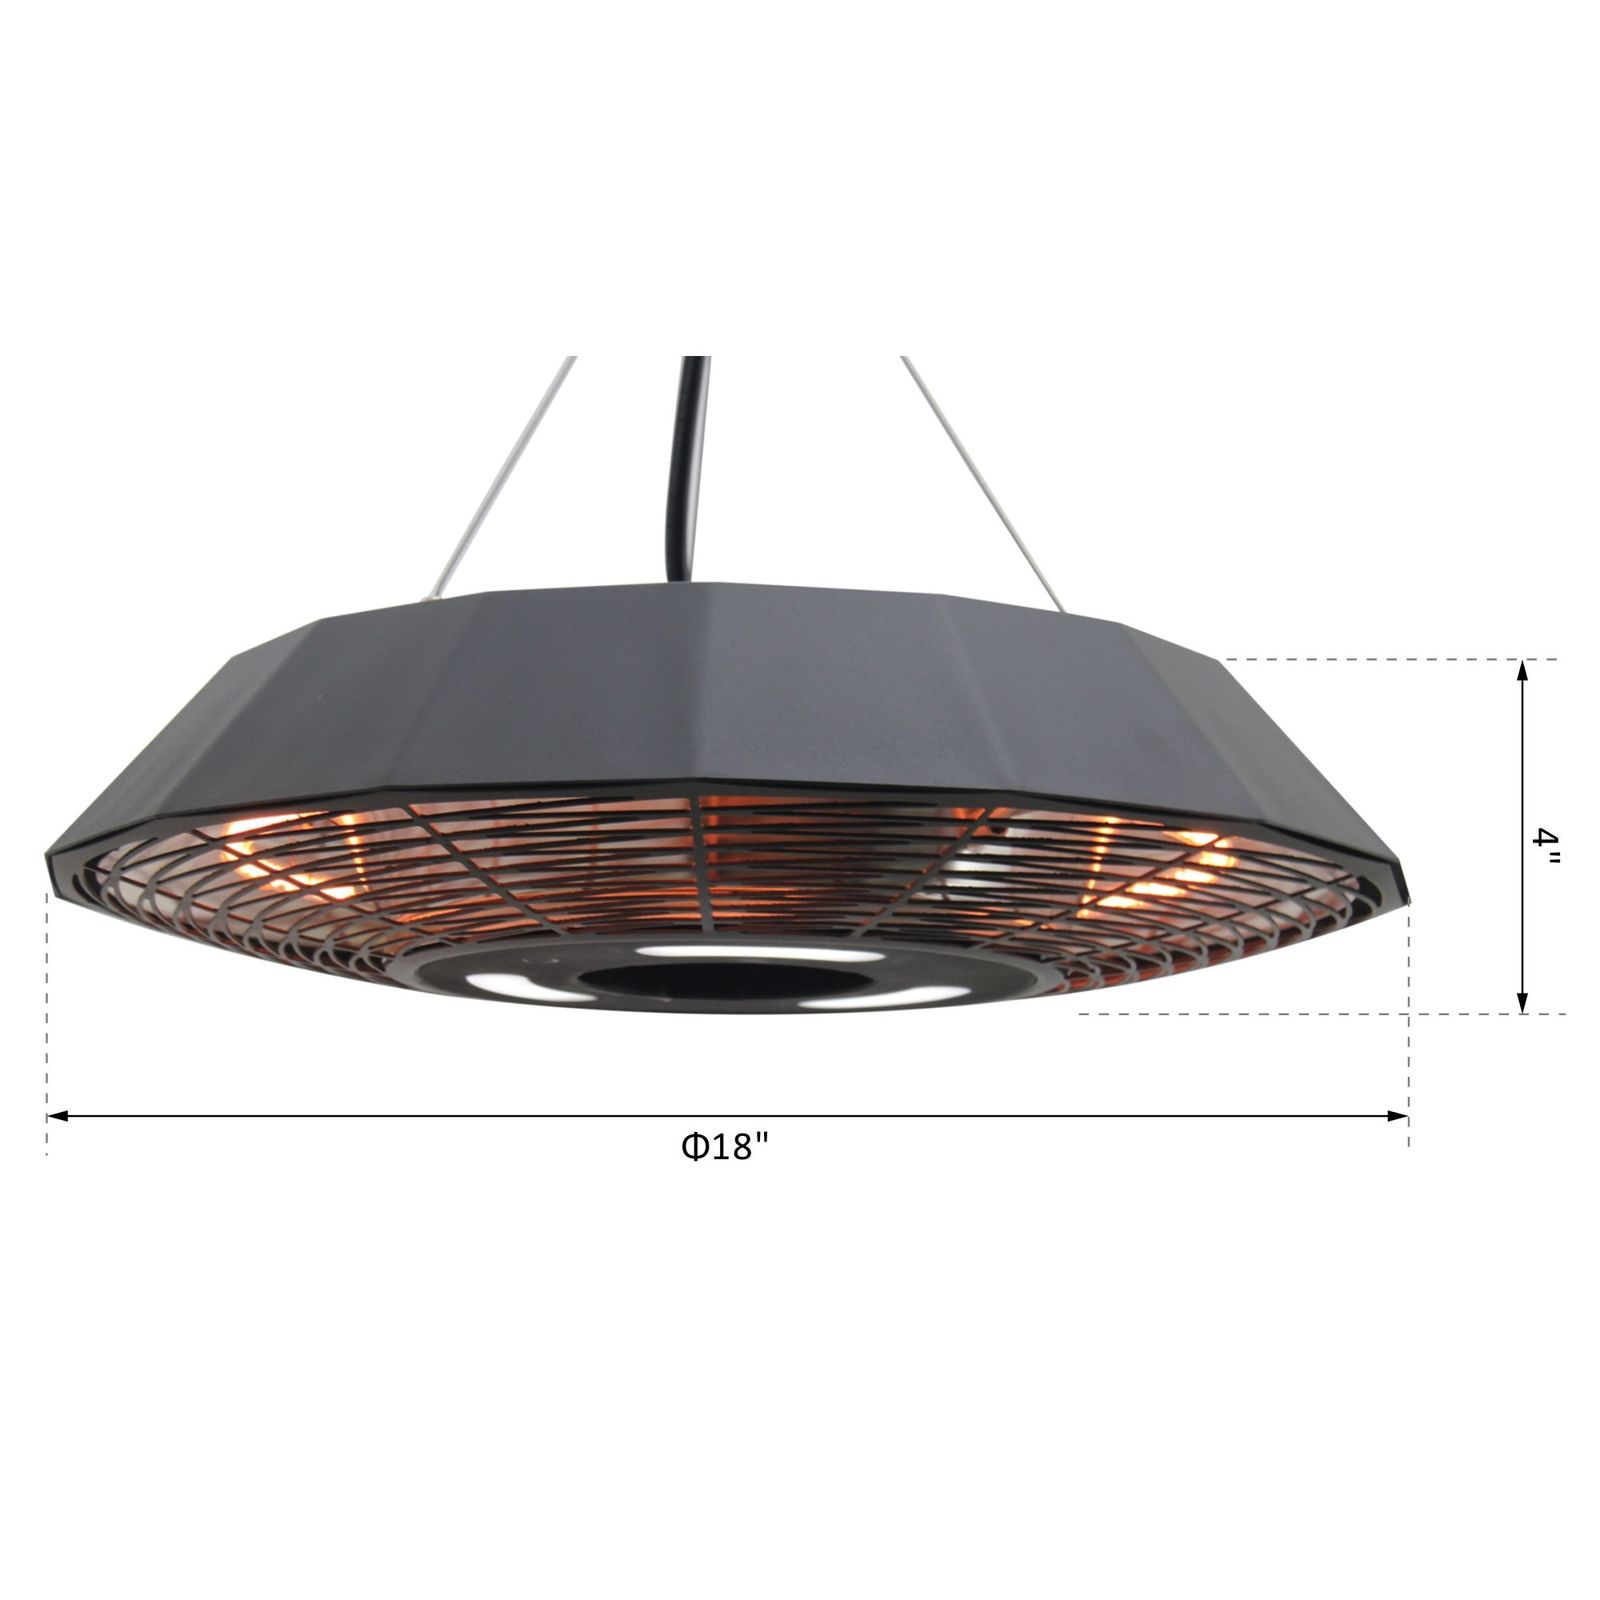 1500 Watt Ceiling Mounted Electric Heater With Remote